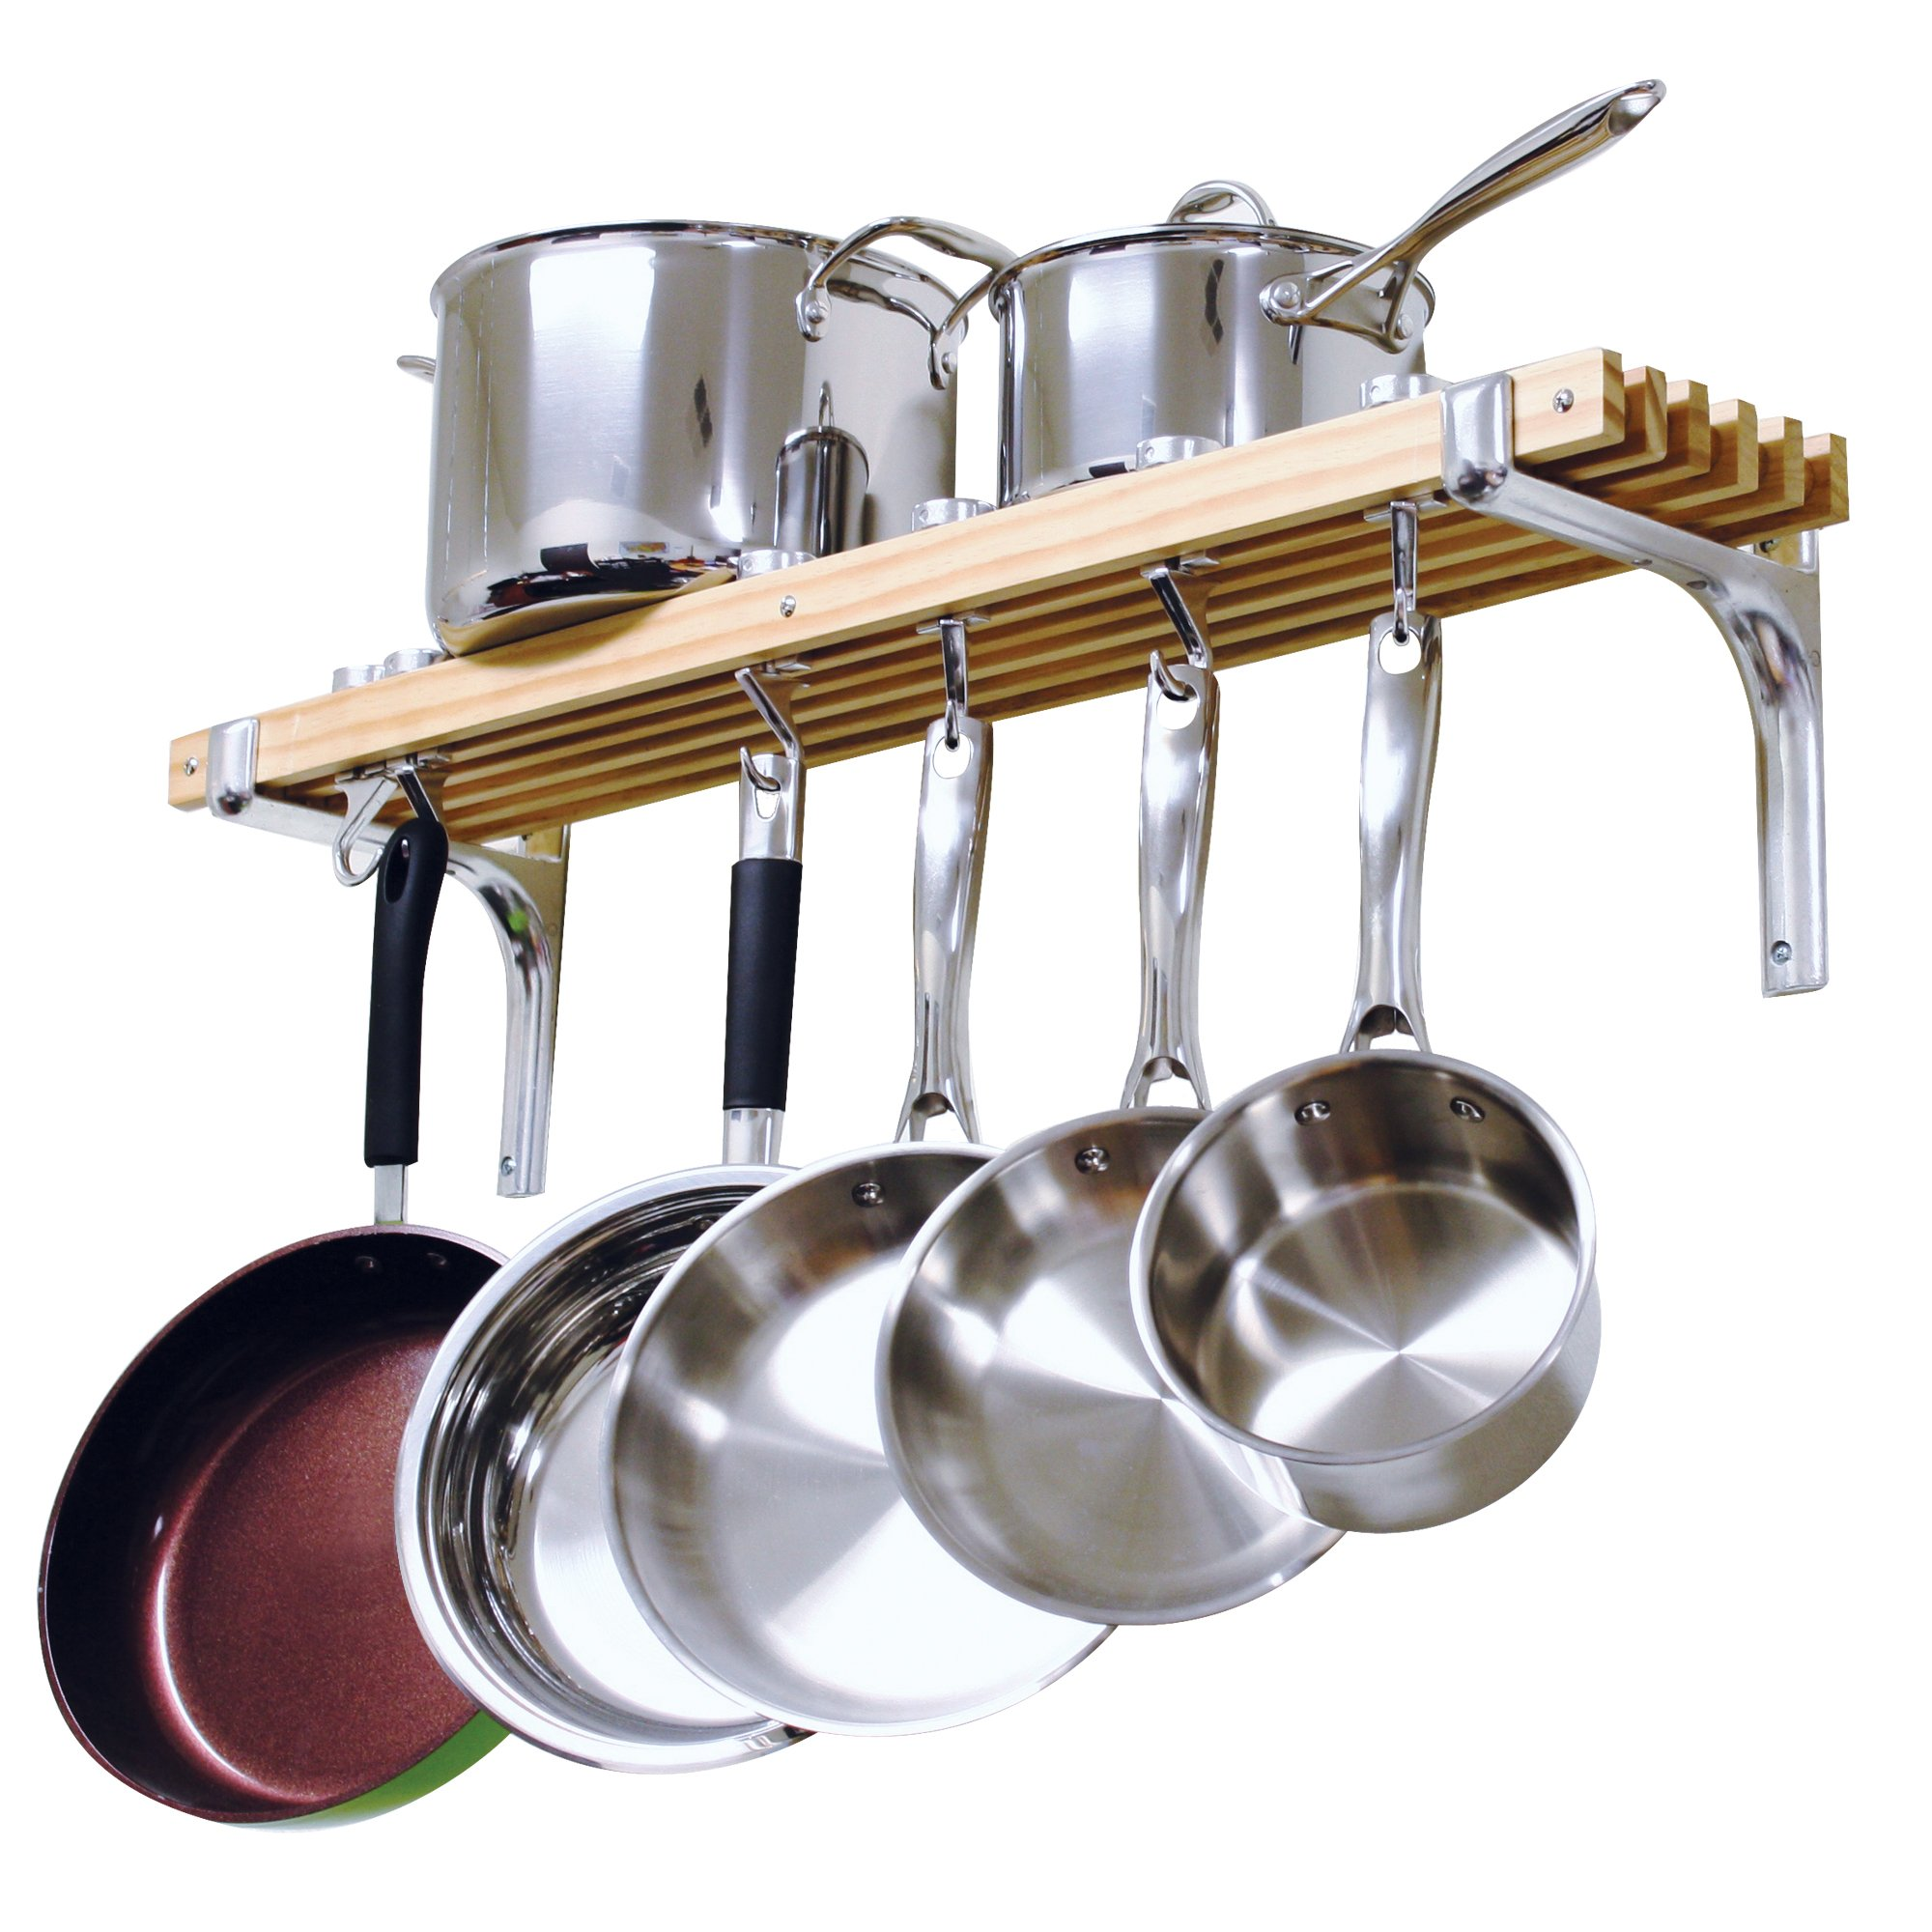 Cooks Standard Wall Mounted Wooden Pot Rack, 36 by 8-Inch by Cooks Standard